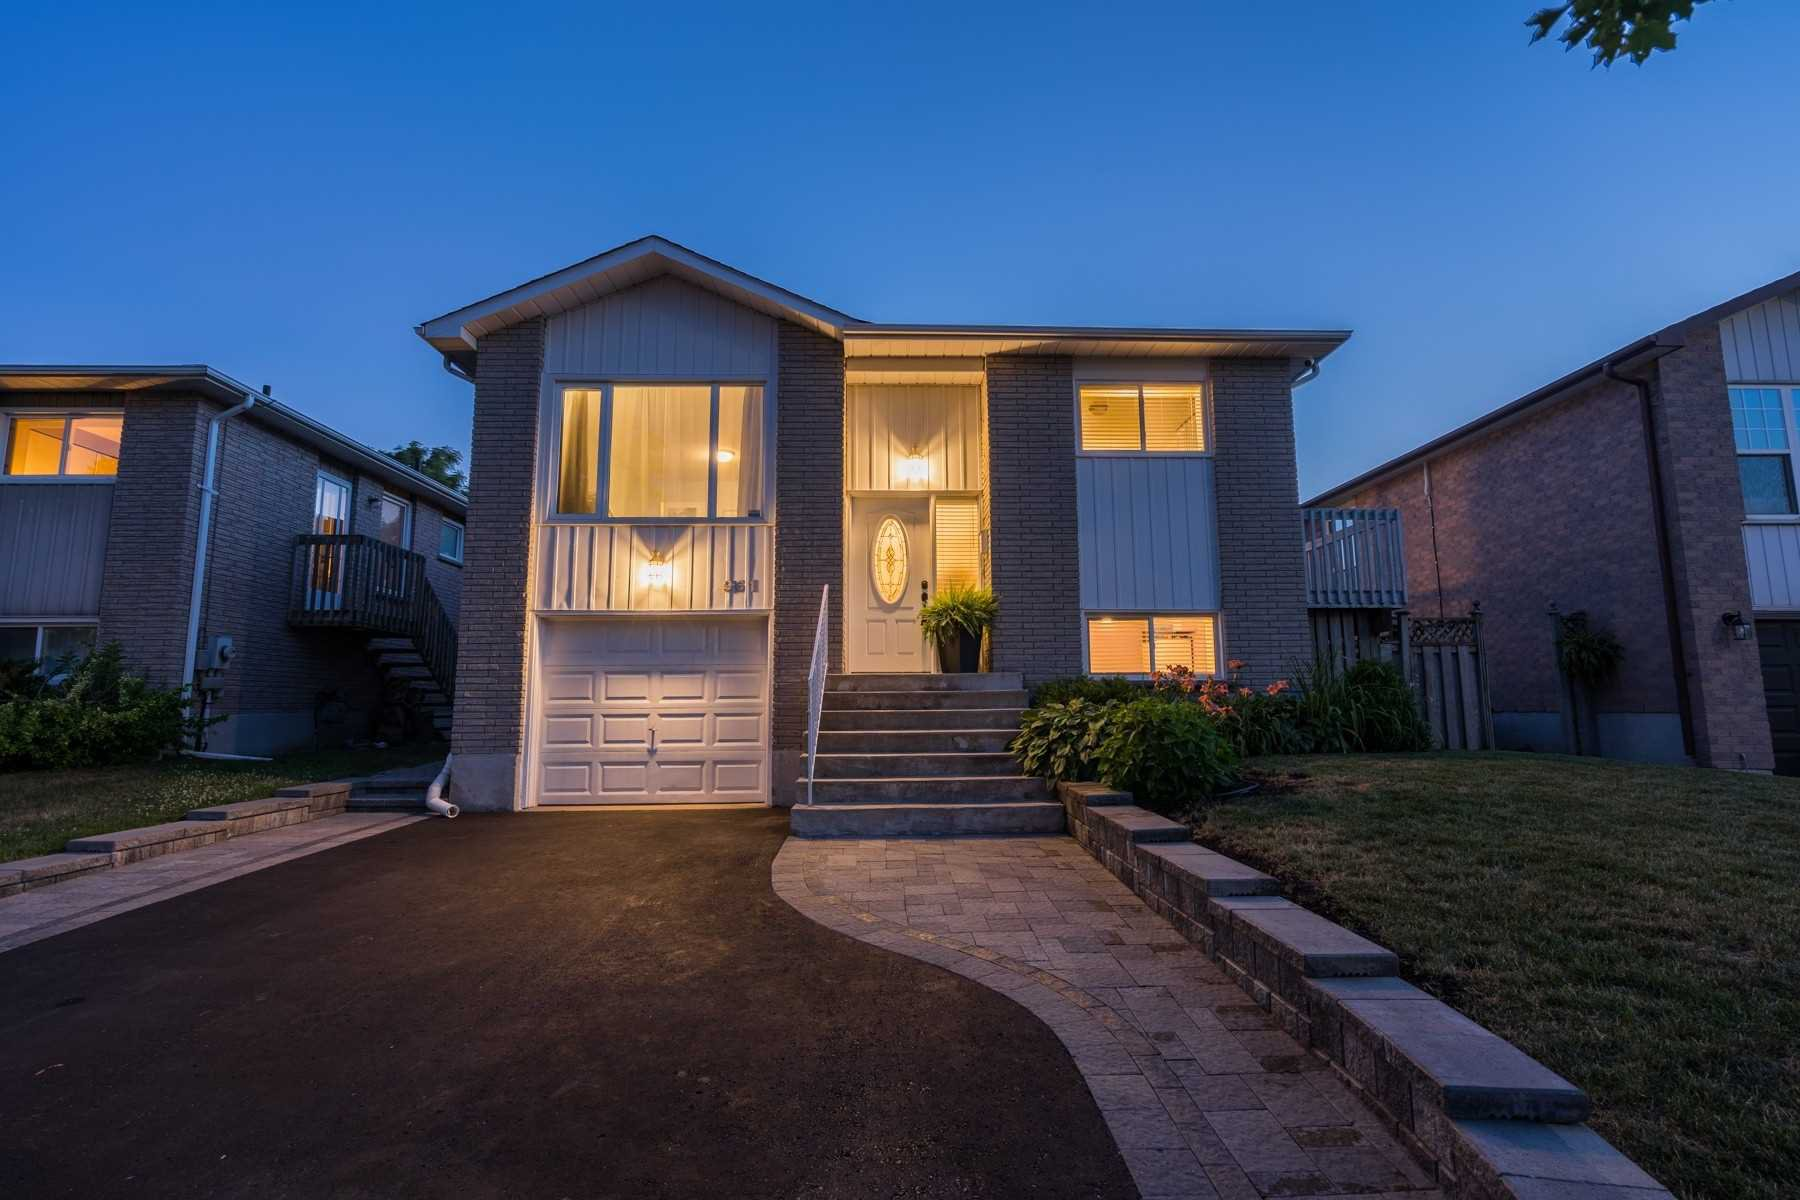 Main Photo: 961 Roundelay Dr in Oshawa: Freehold for sale : MLS®# E4855065